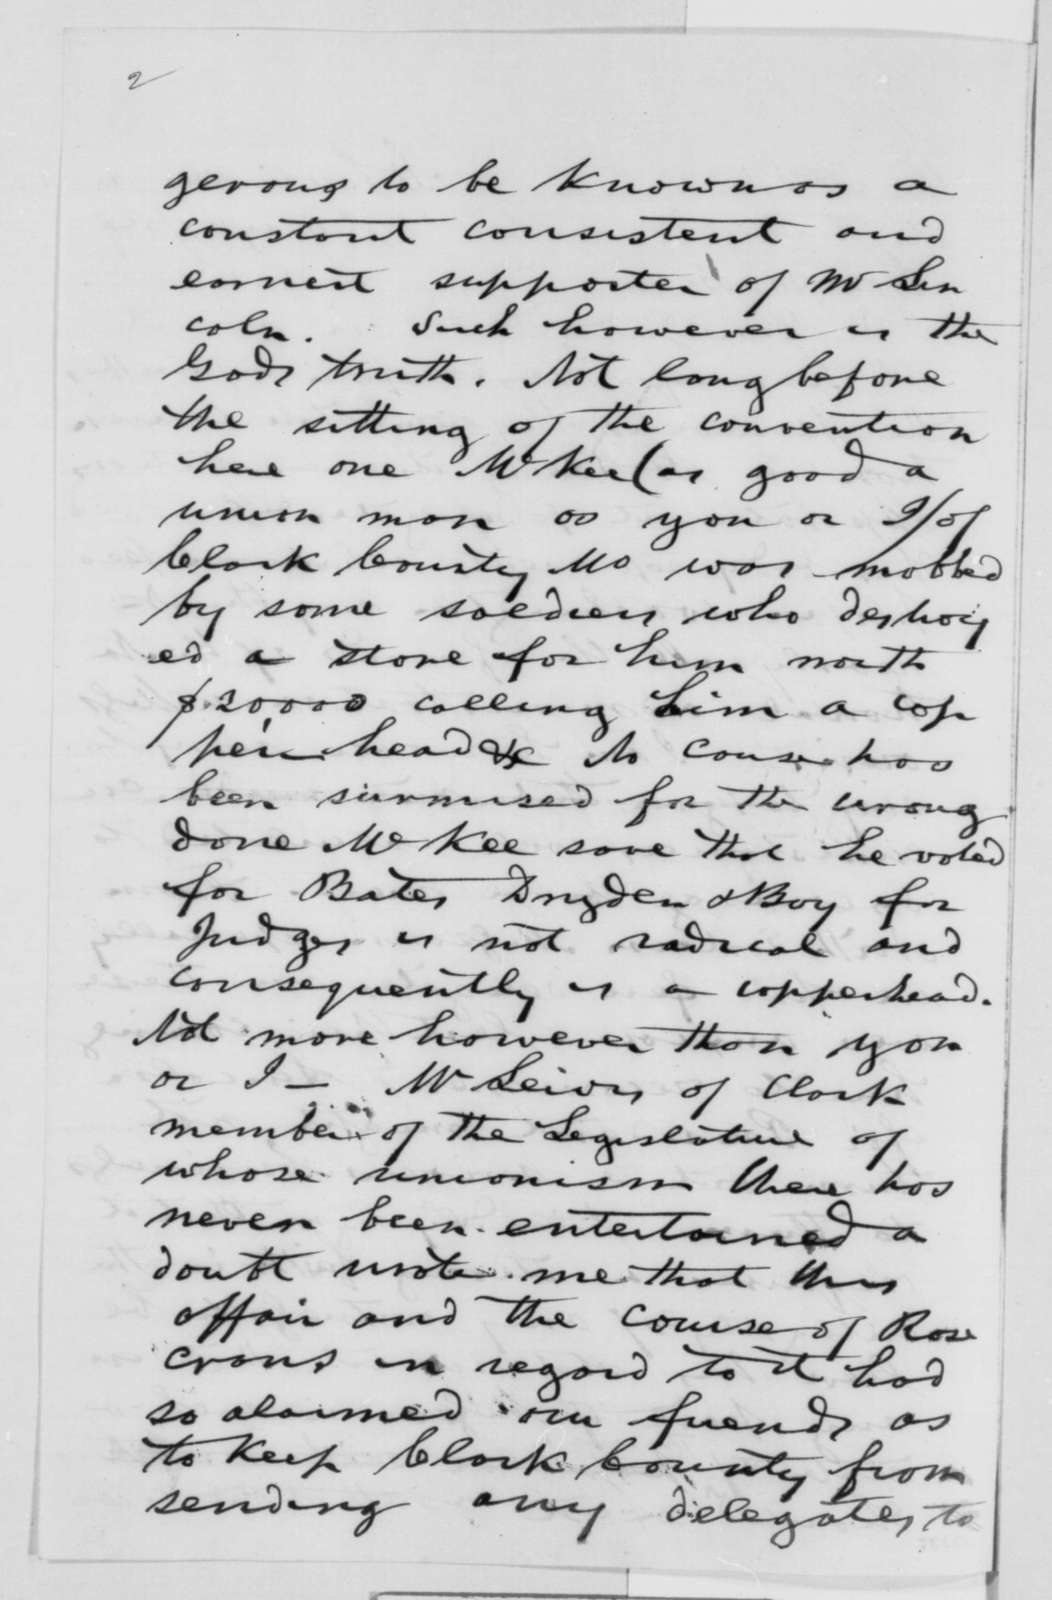 Samuel T. Glover to Montgomery Blair, Friday, May 27, 1864  (Political affairs in Missouri)